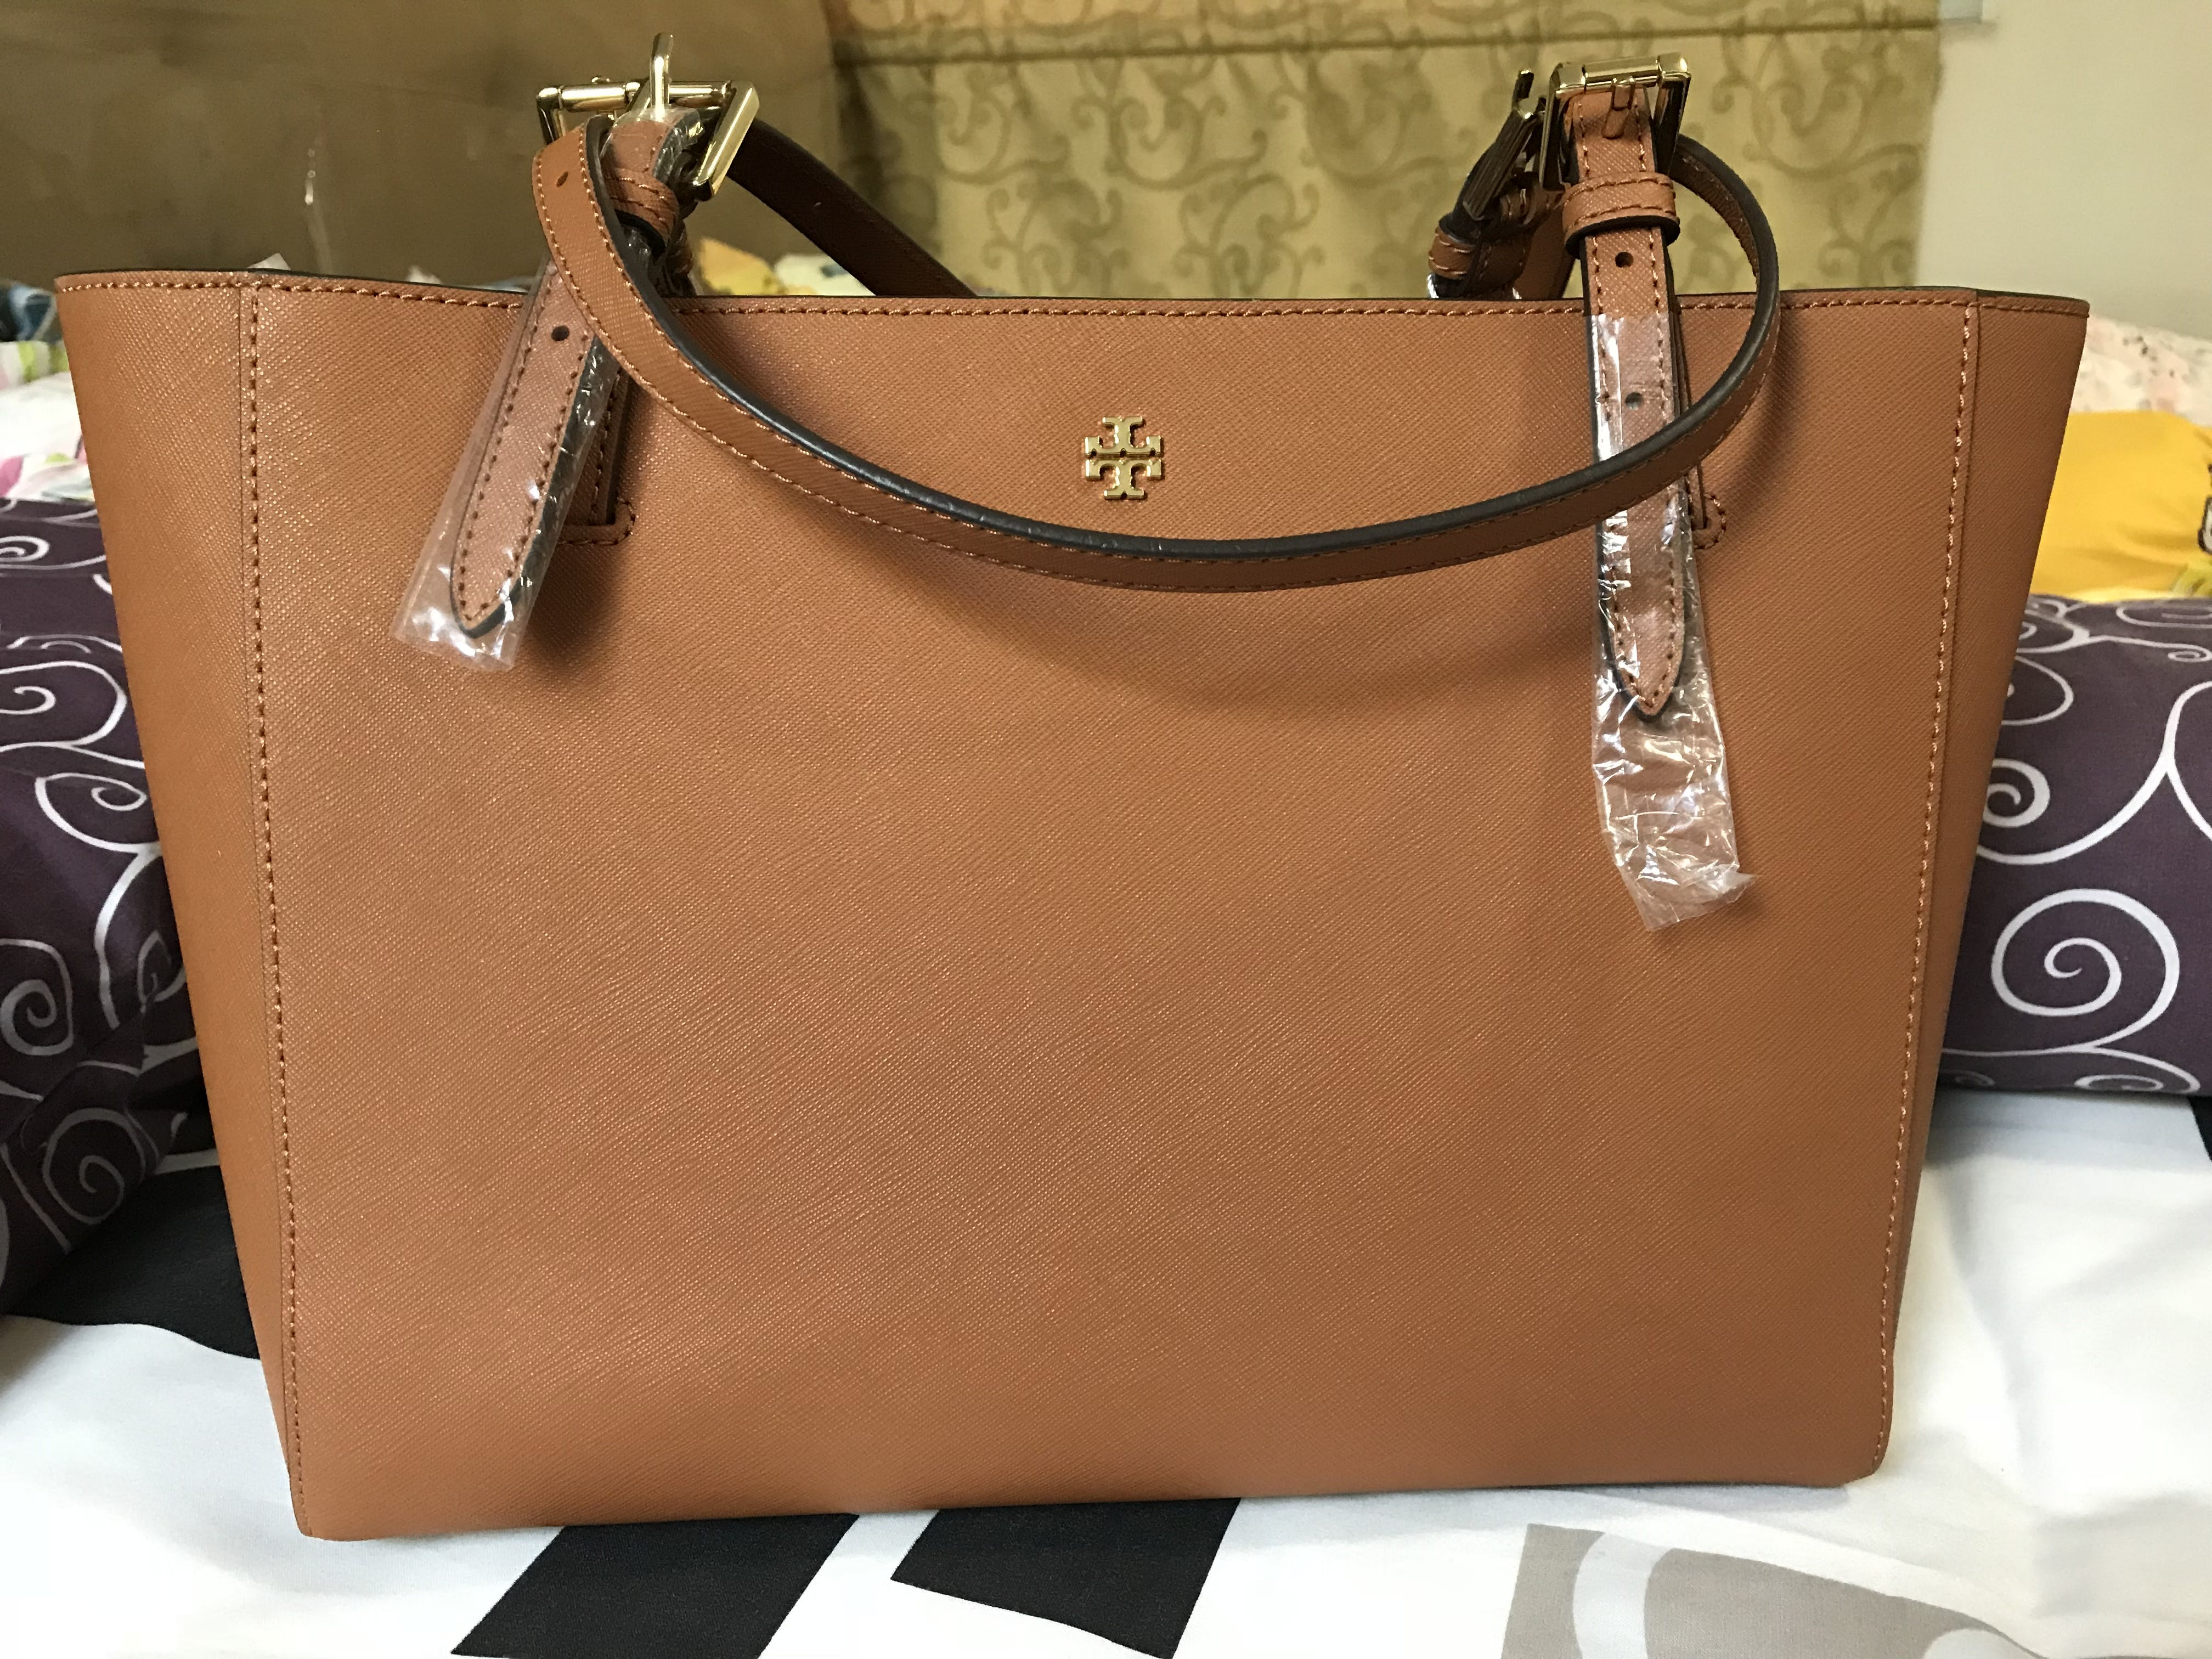 Tas Tory Burch 40668 Leather York Small Buckle Tote Luggage Brown Black User Picture